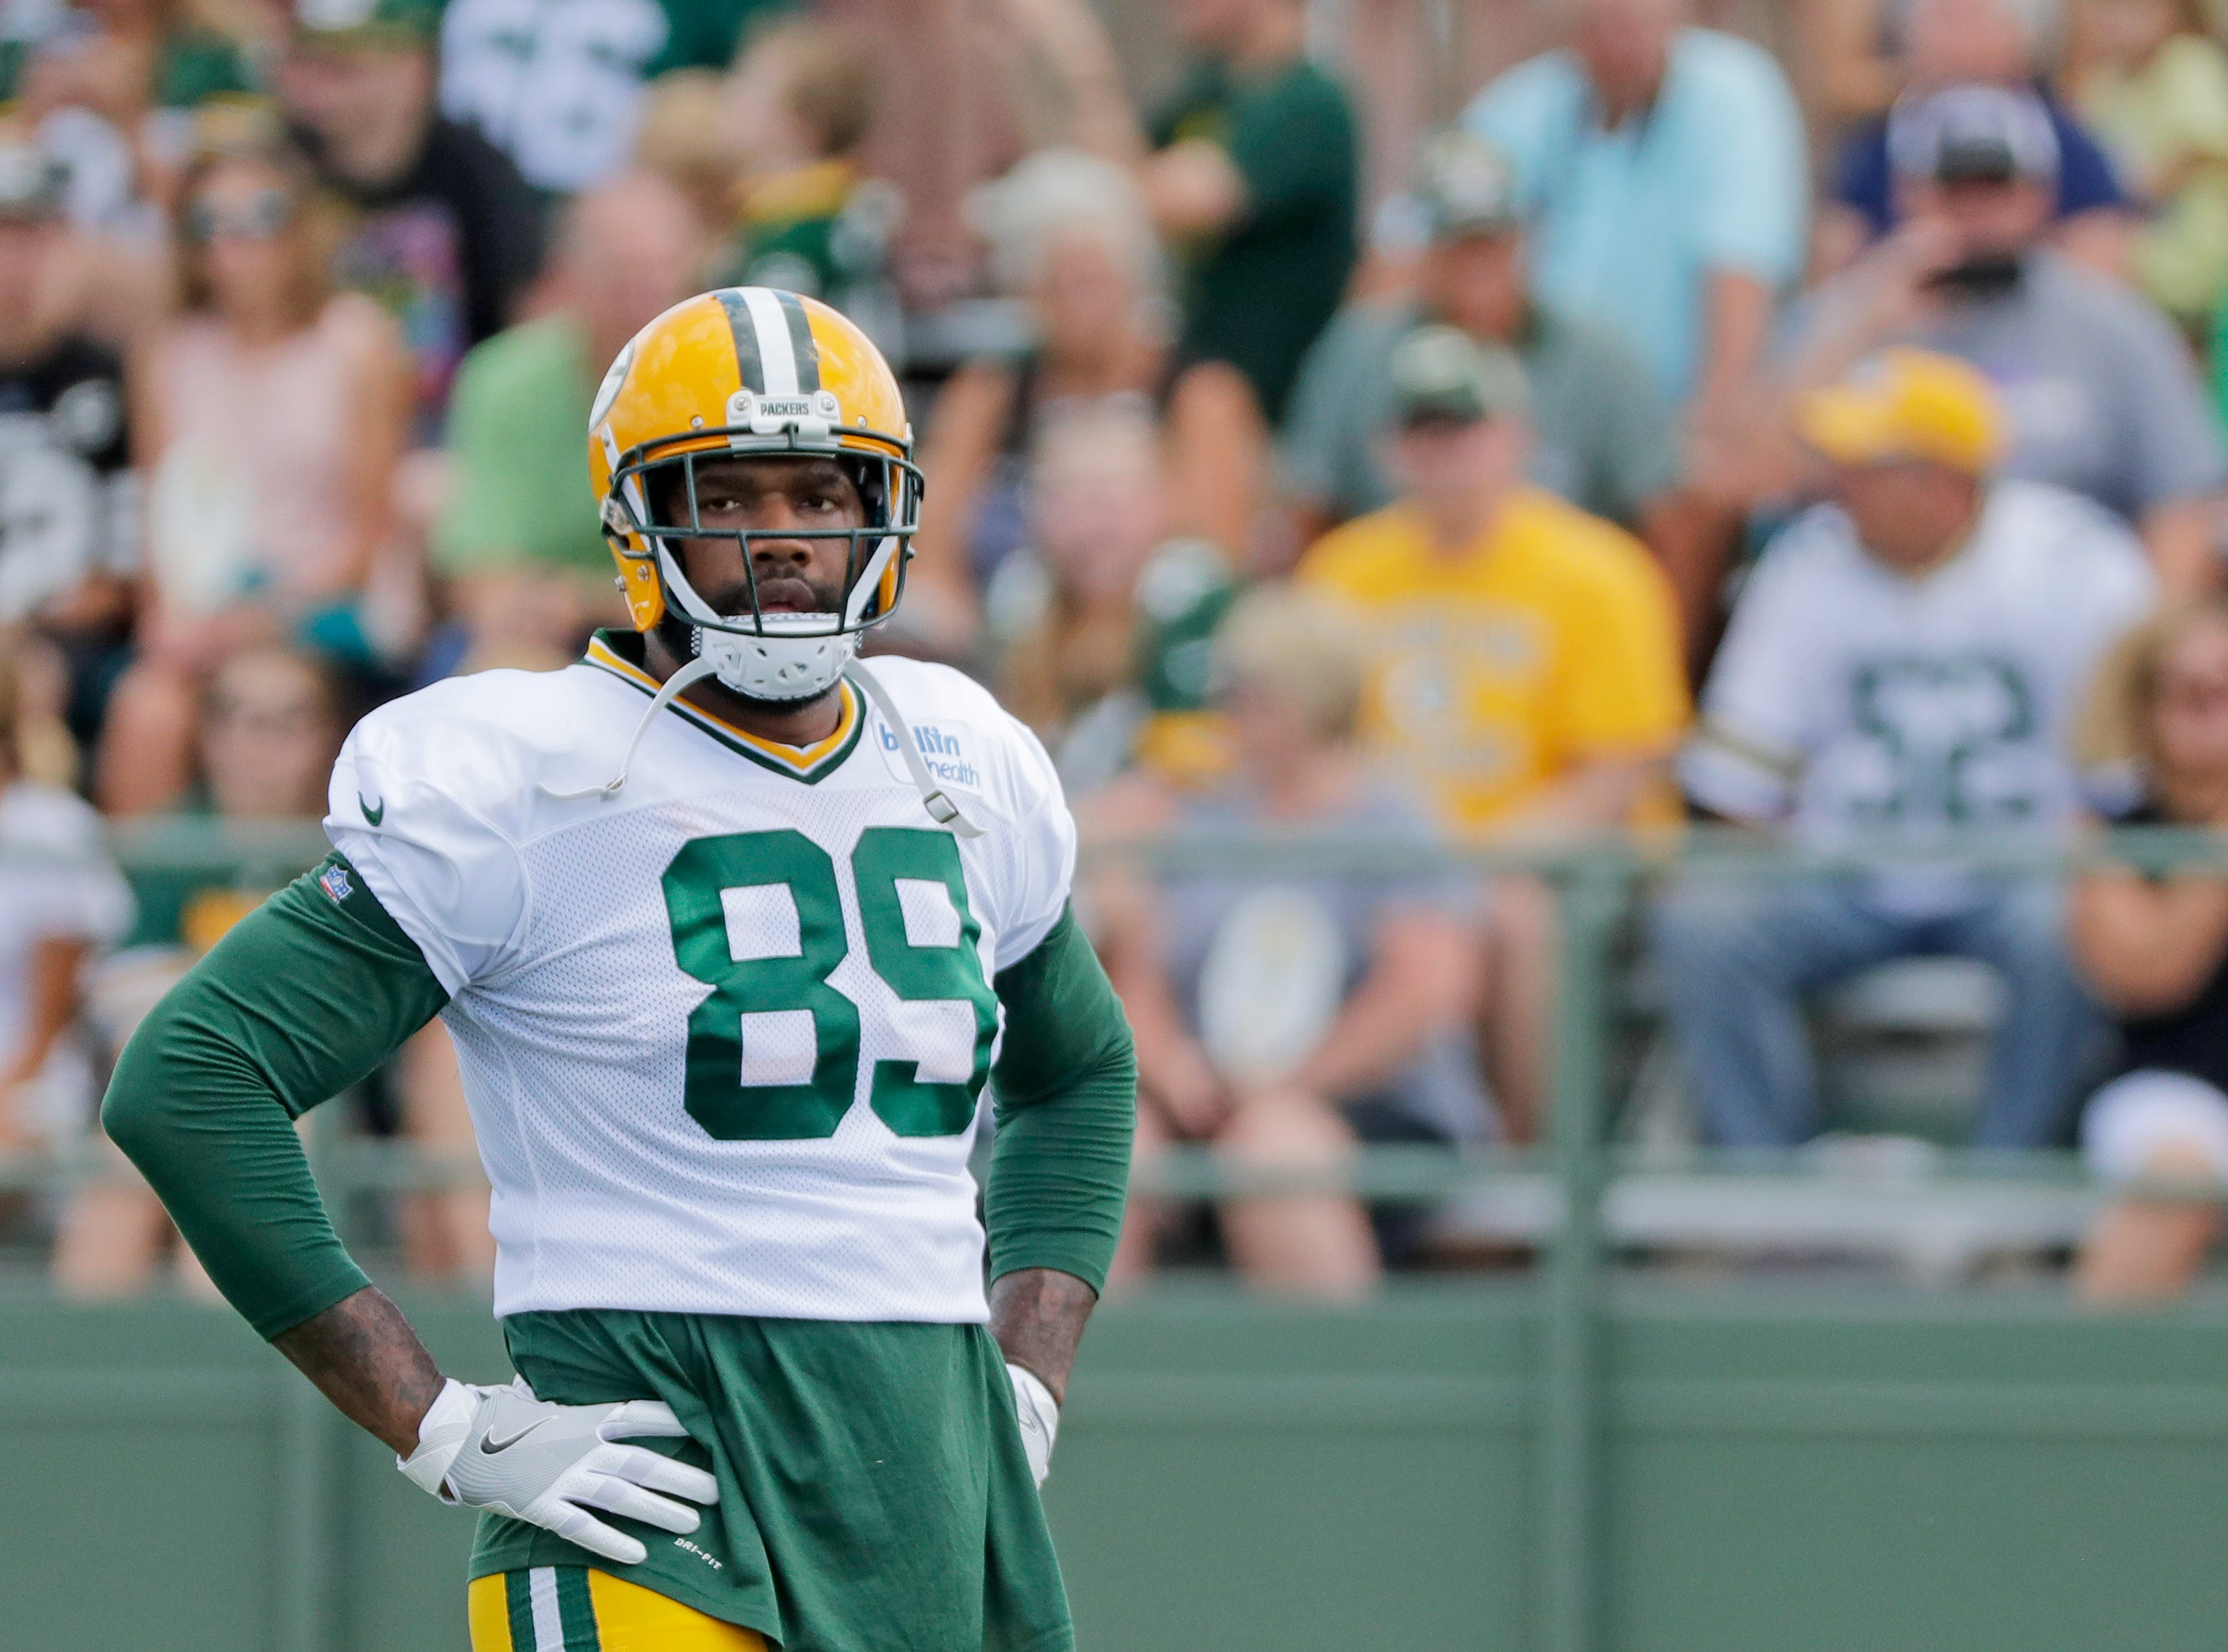 Green Bay Packers tight end Marcedes Lewis (89) during training camp practice at Ray Nitschke Field on Friday, August 3, 2018 in Ashwaubenon, Wis. 